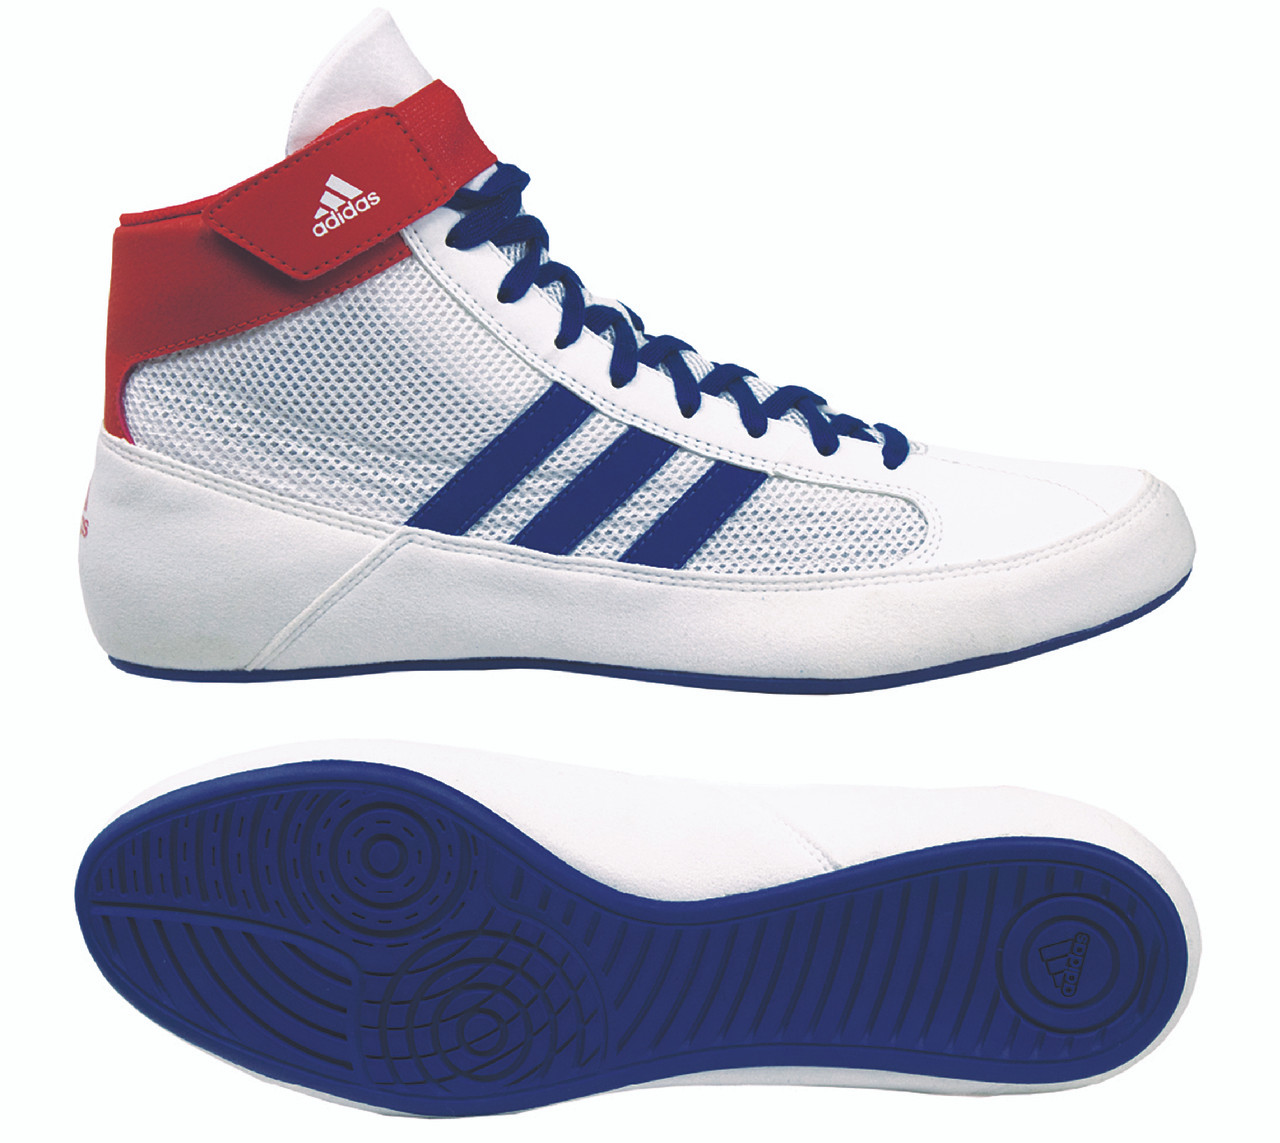 ADIDAS YOUTH HVC 2 - WHITE/RED/ROYAL - G25909